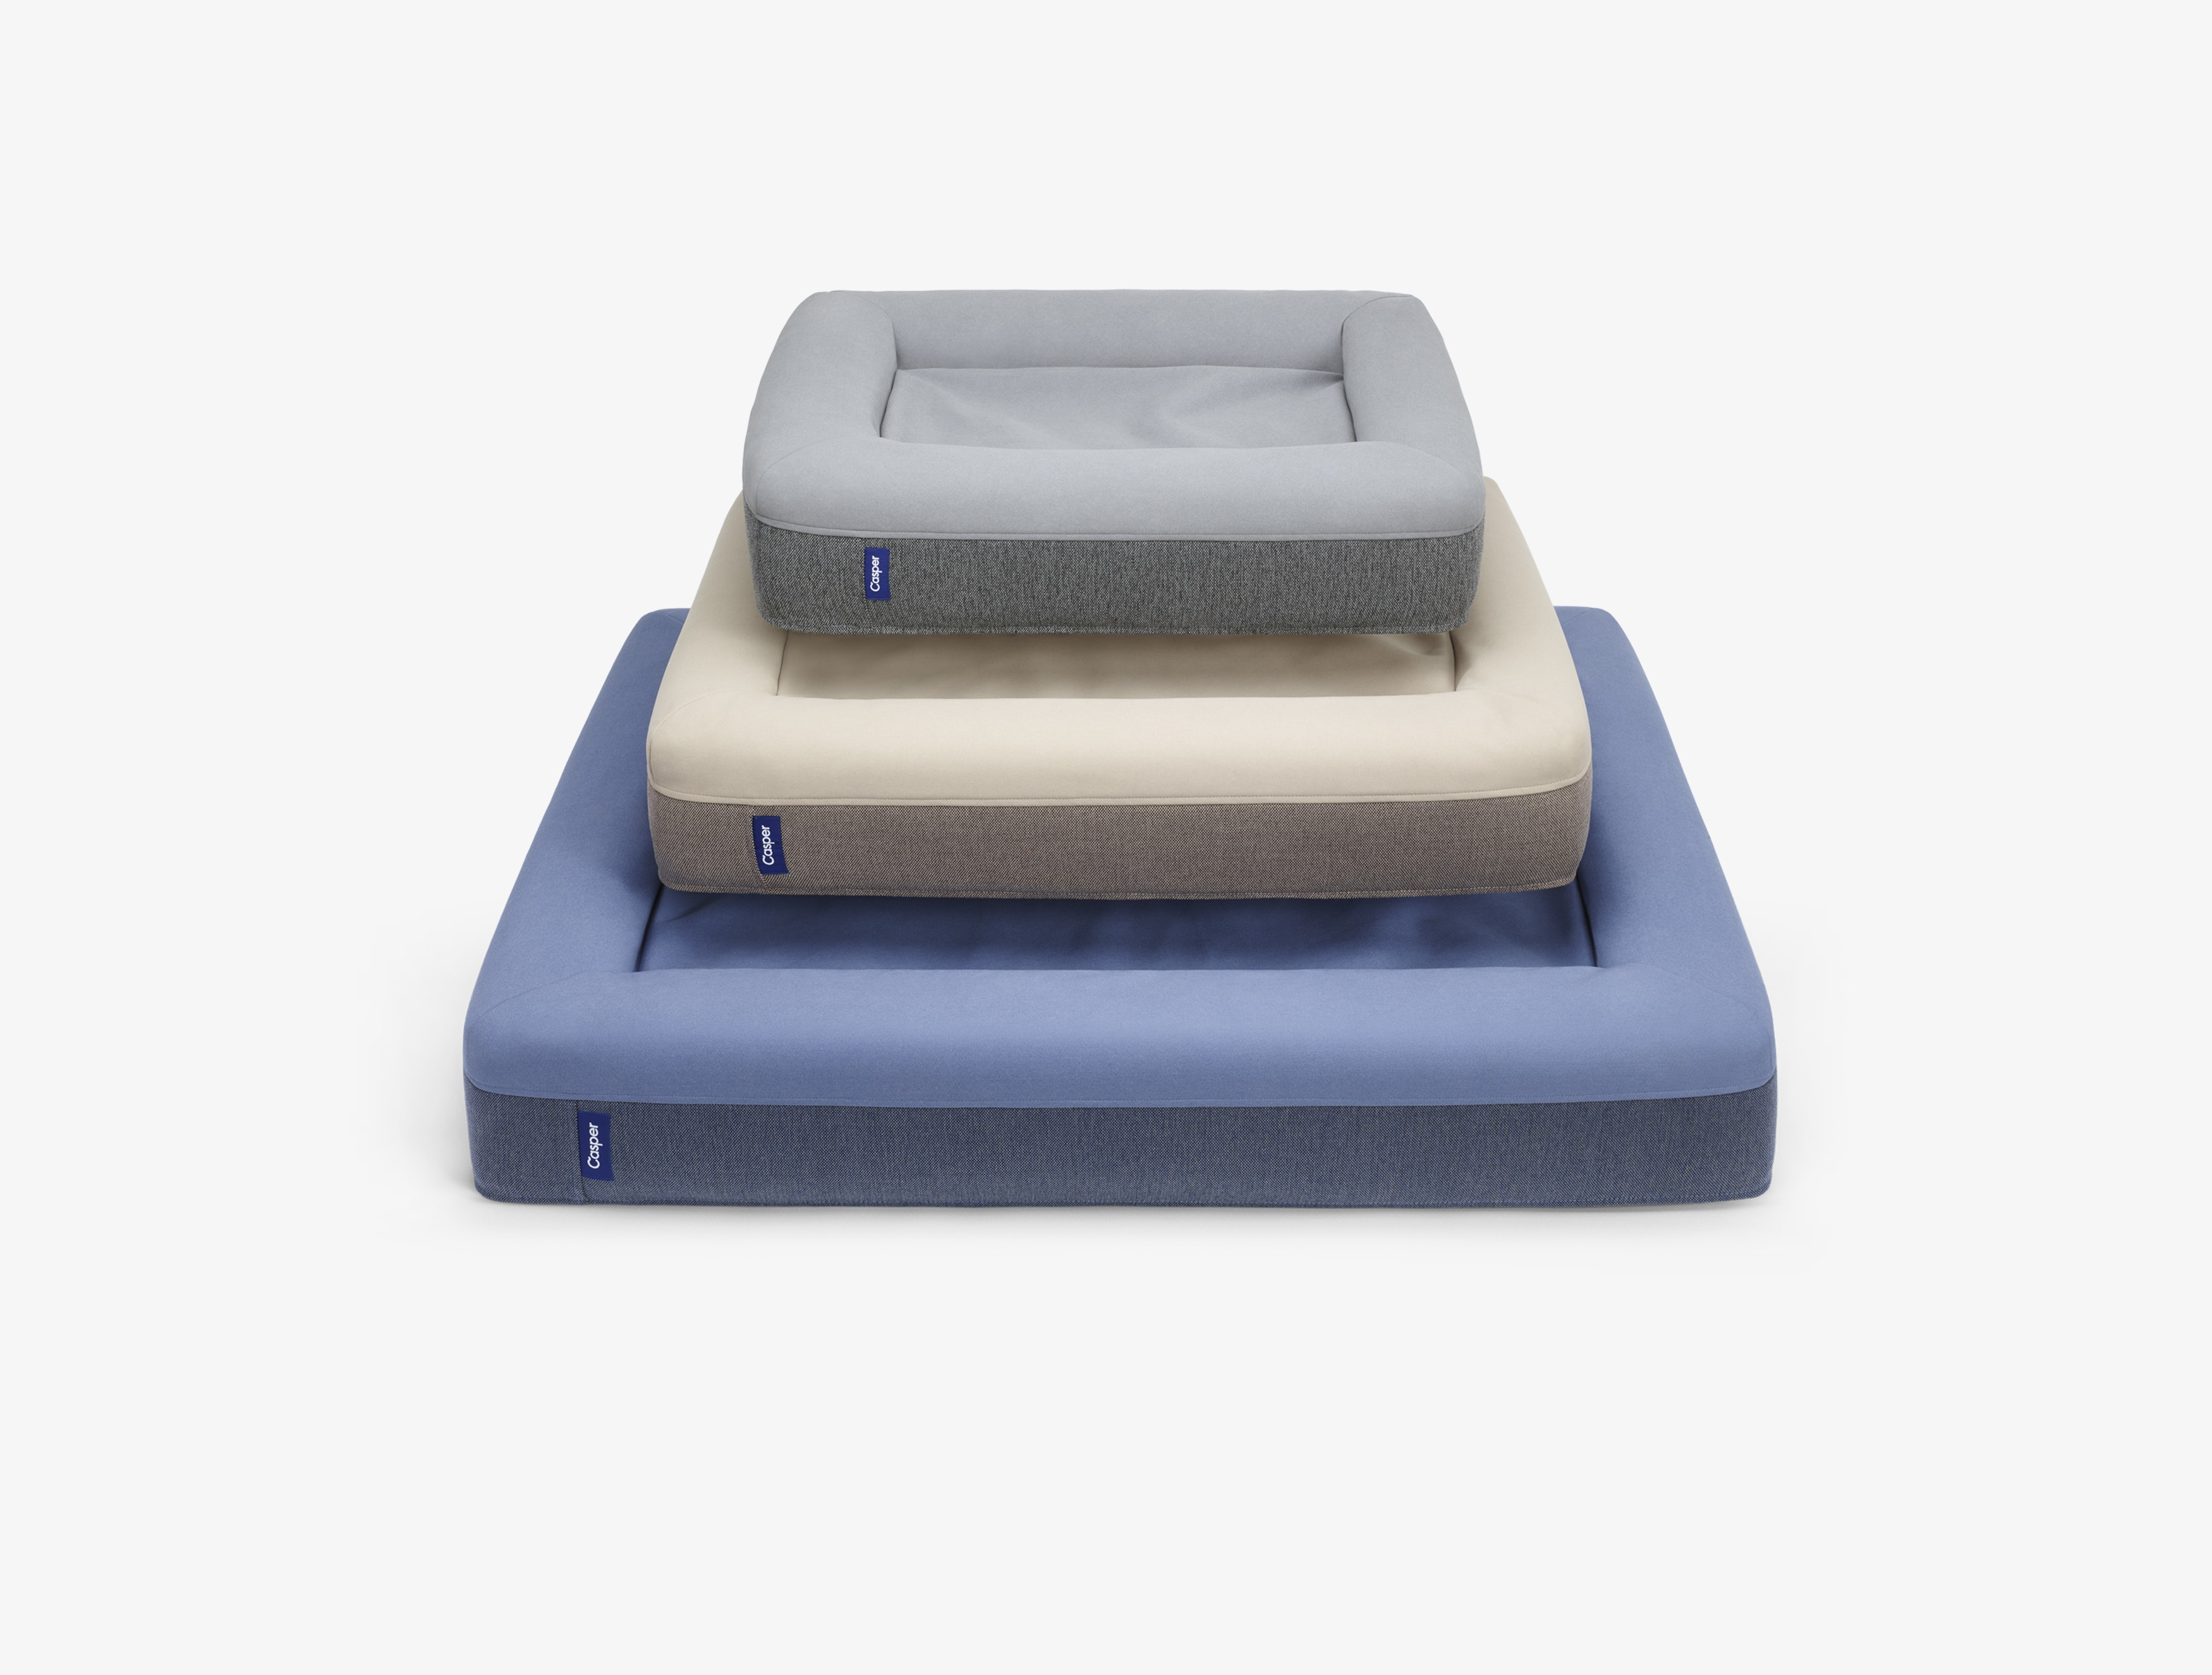 Three Sizes Of The Casper Dog Bed Stacked On Top Of Each Other ...